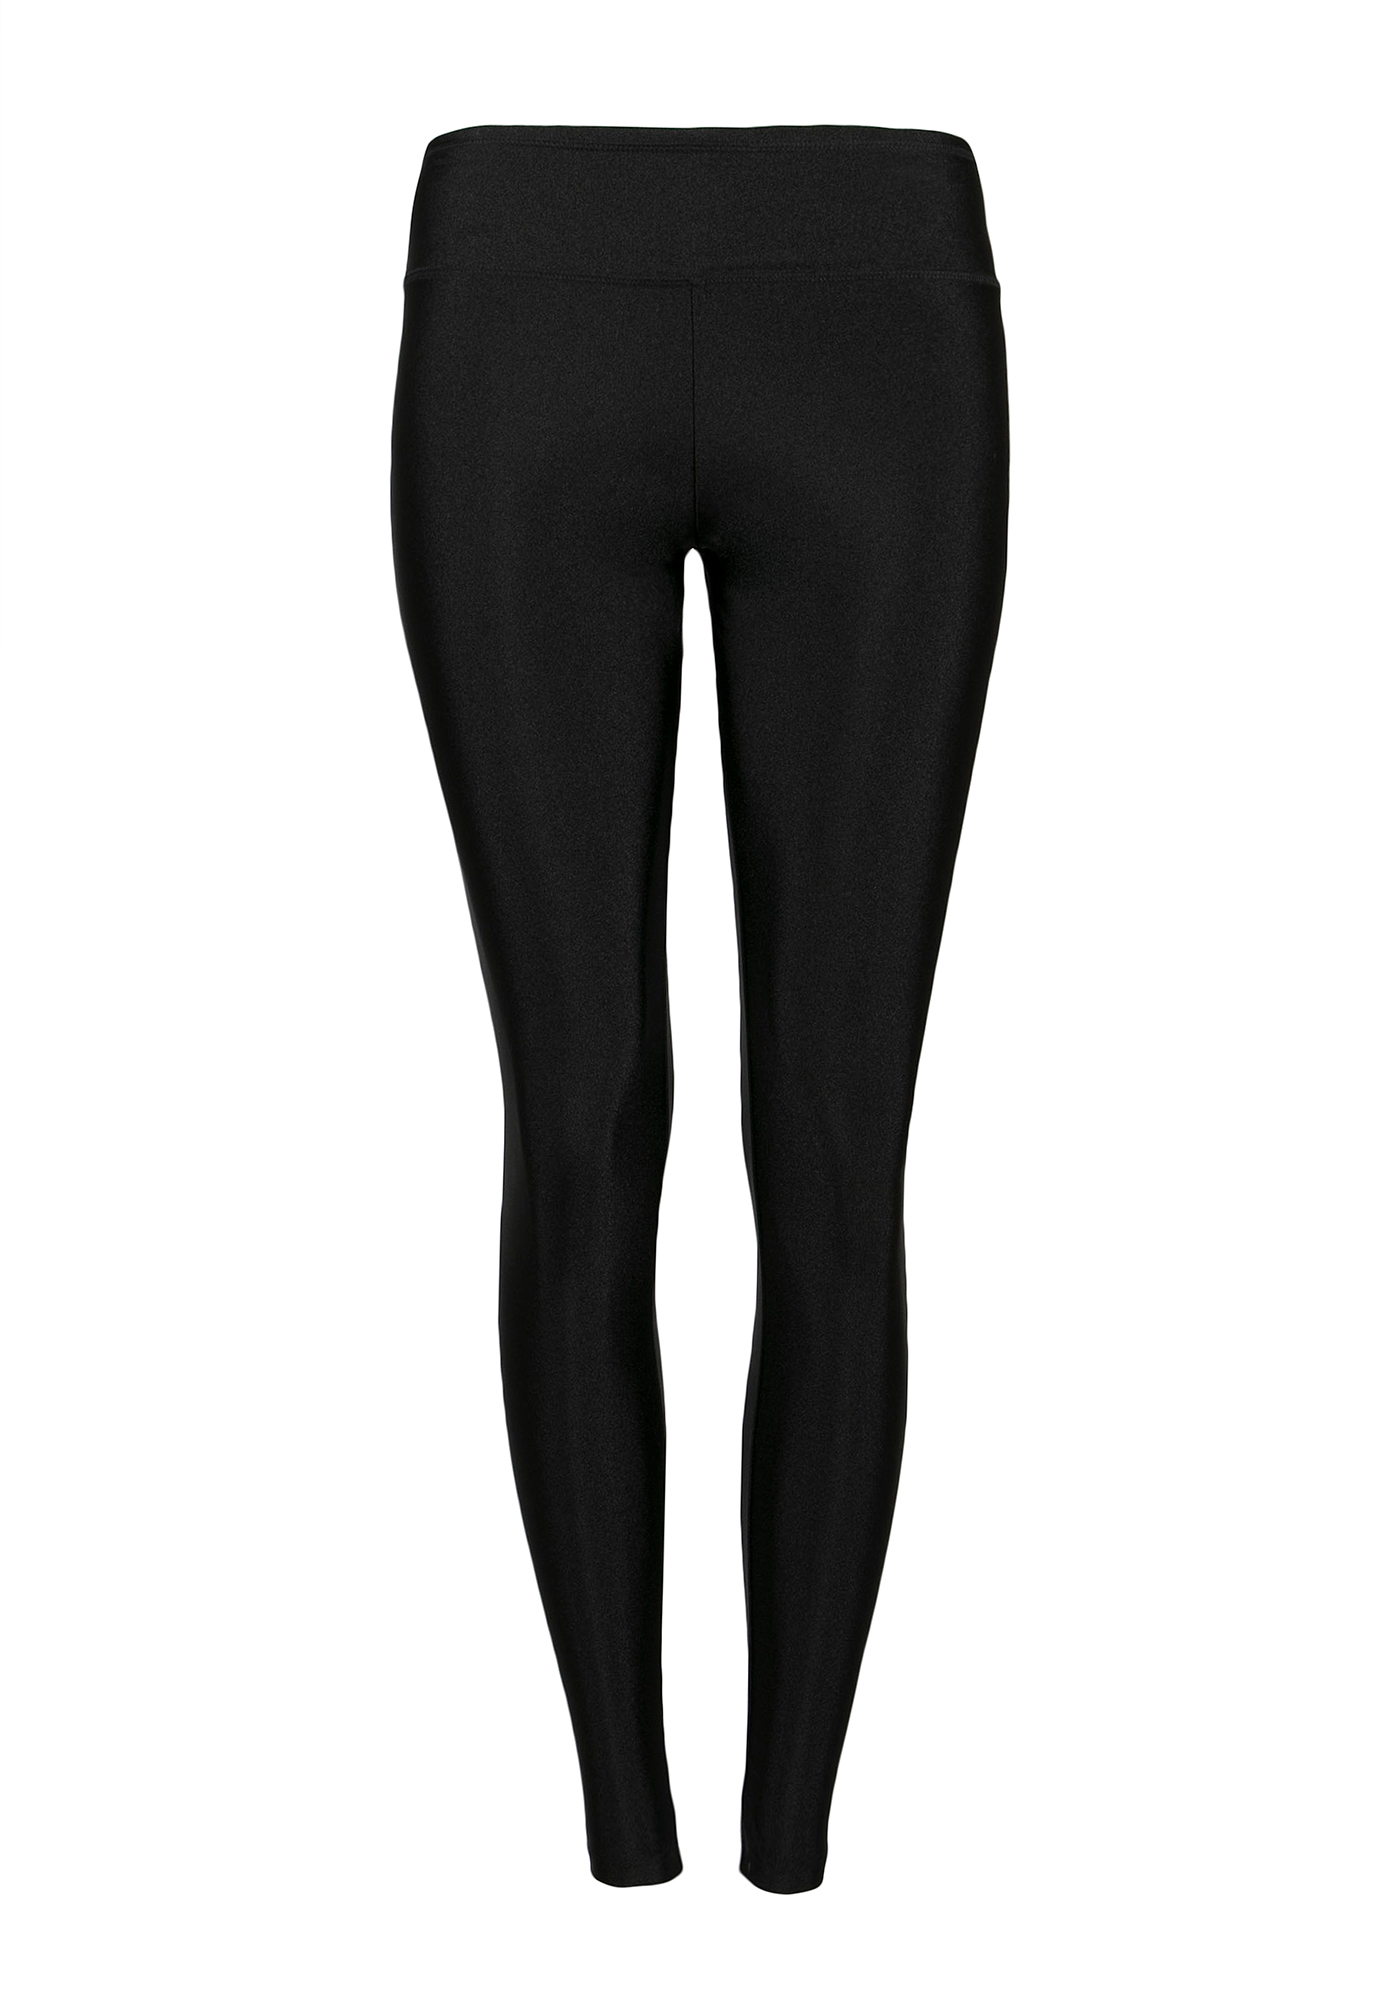 Ladies' High Waist Shiny Legging, BLACK, hi-res